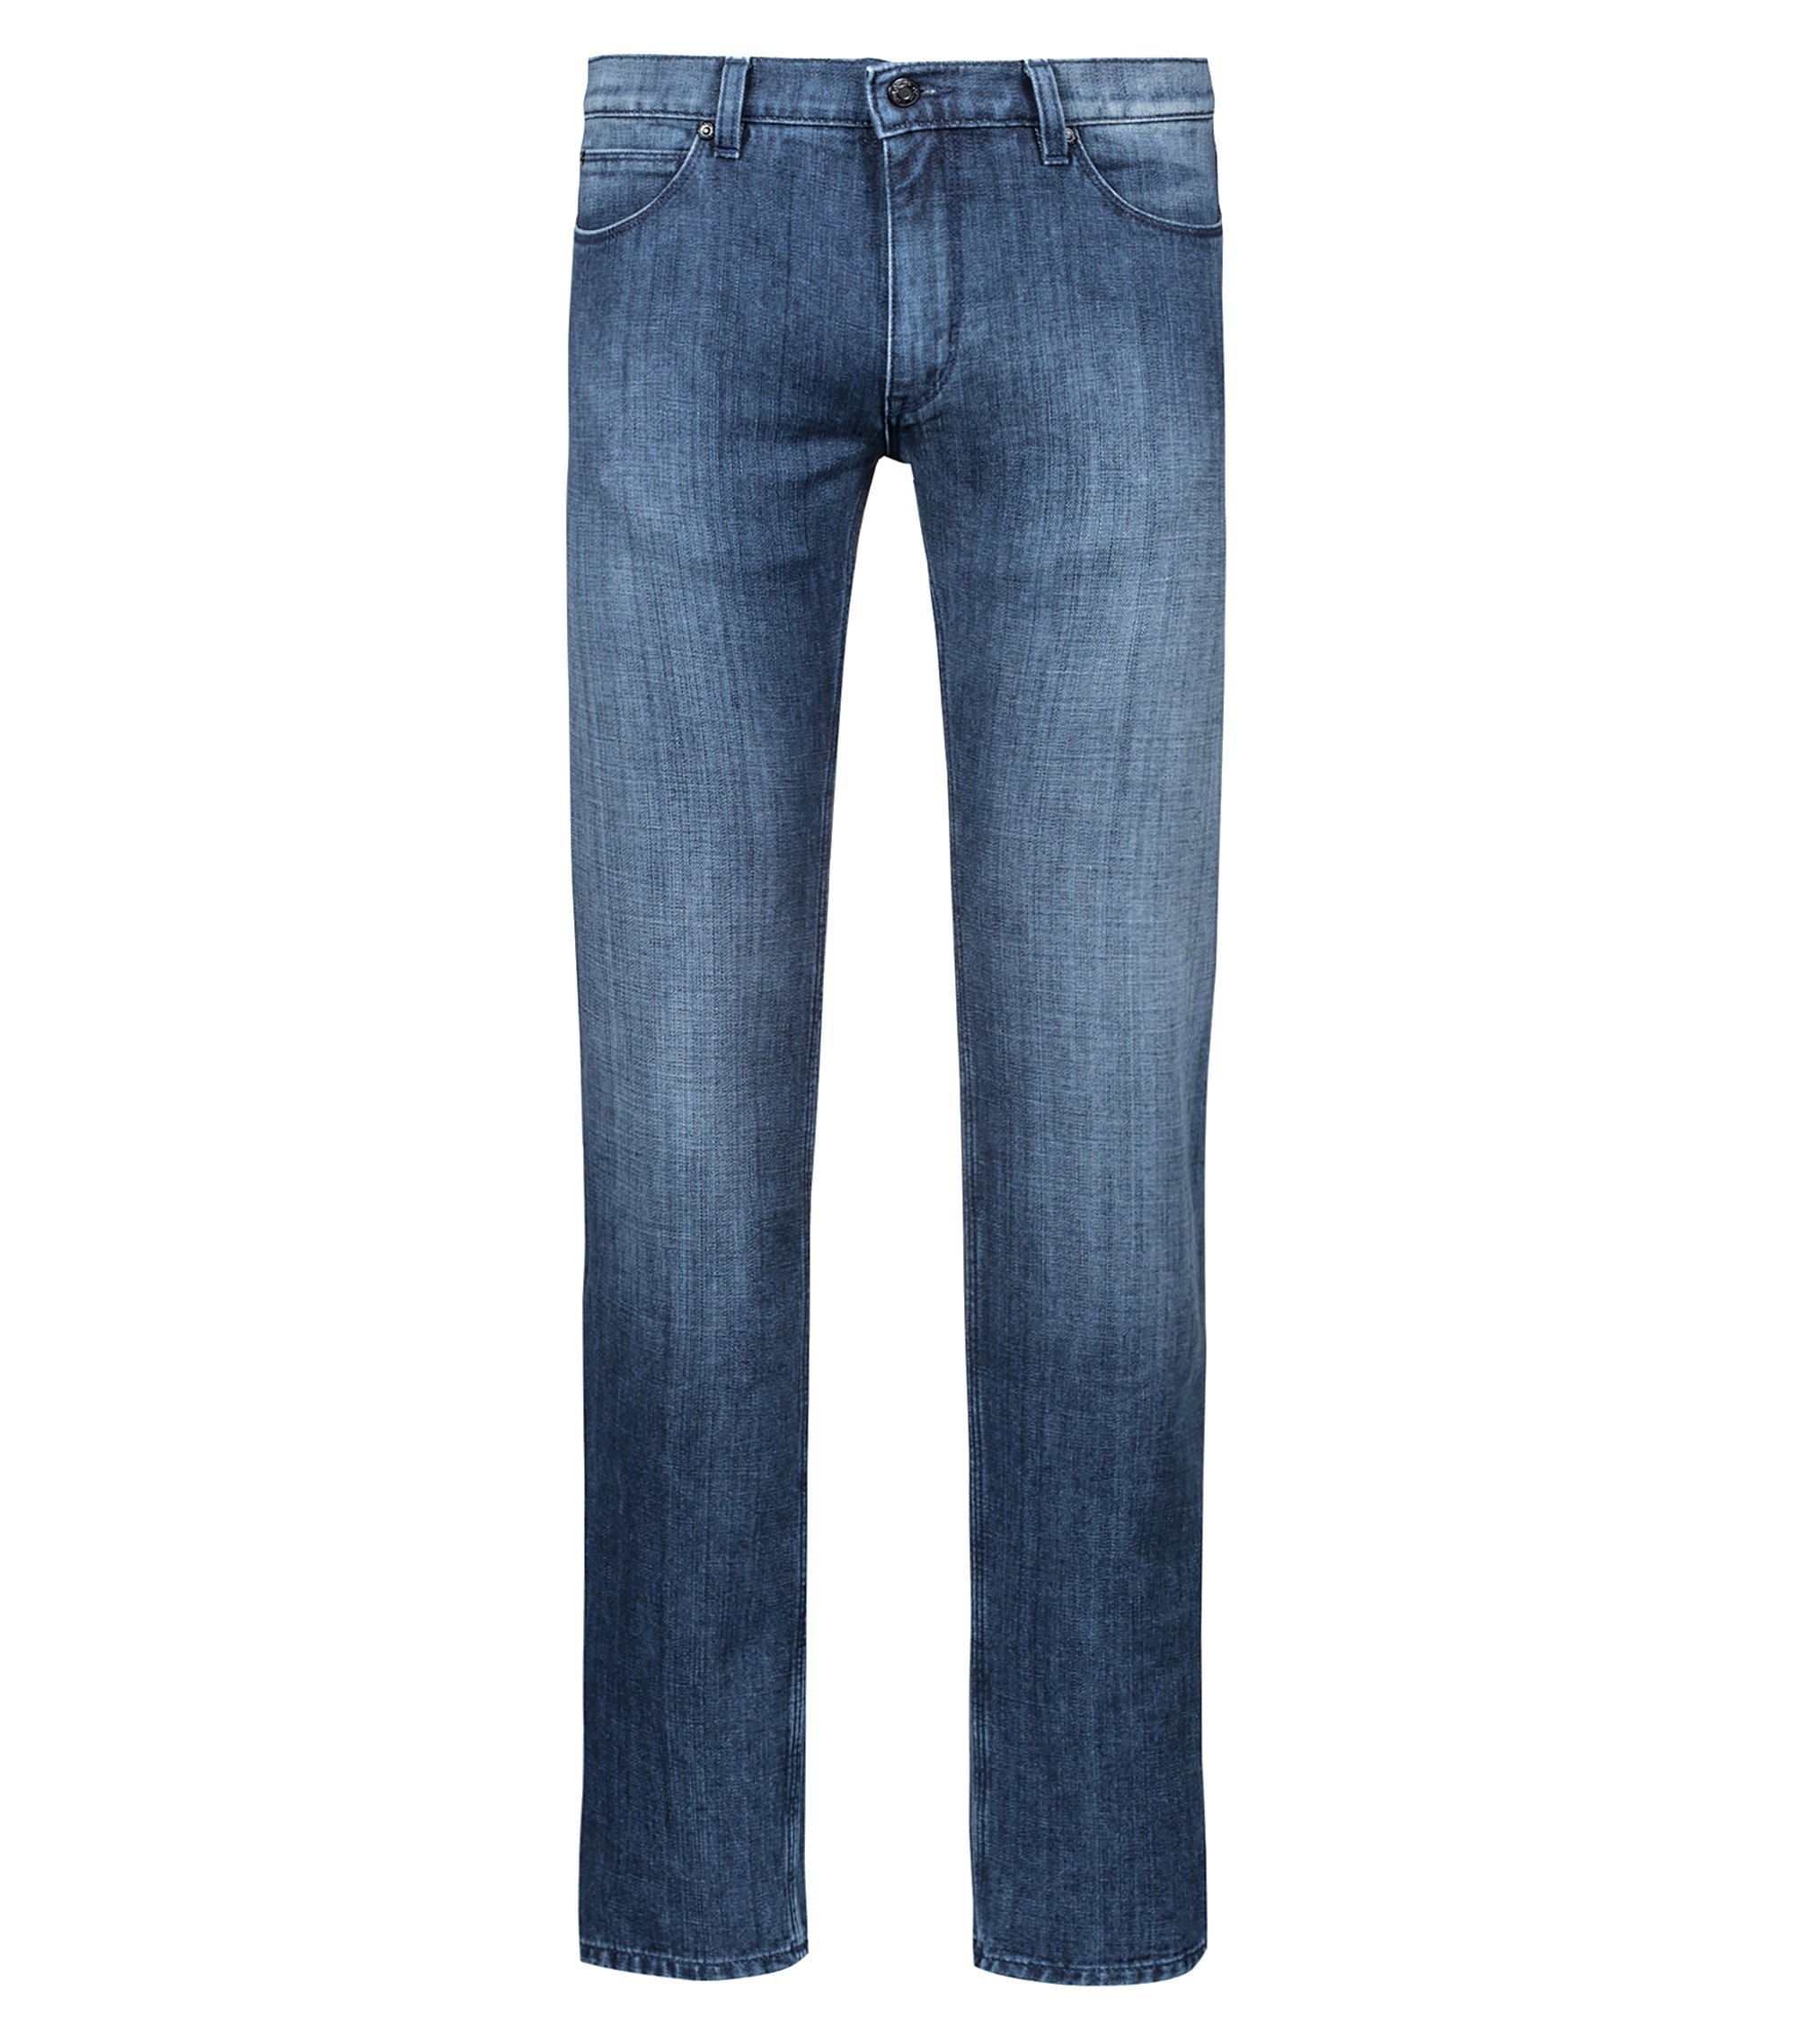 Bits & Bytes Capsule slim-fit jeans in blue-washed denim, Blue